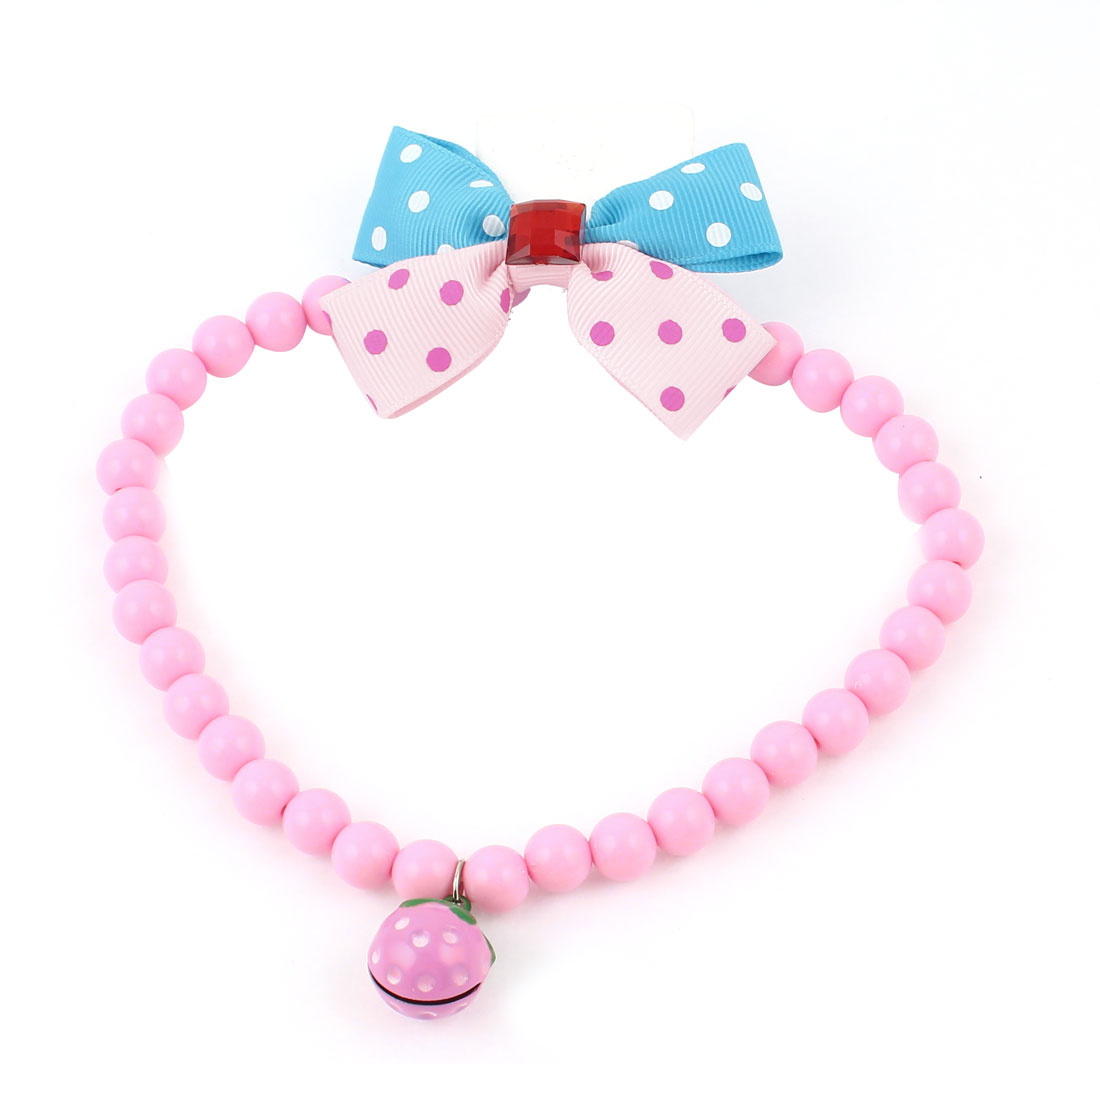 Metal Bell Pendant Bowtie Accent Pet Dog Plastic Beads Collar Necklace Pink Blue L